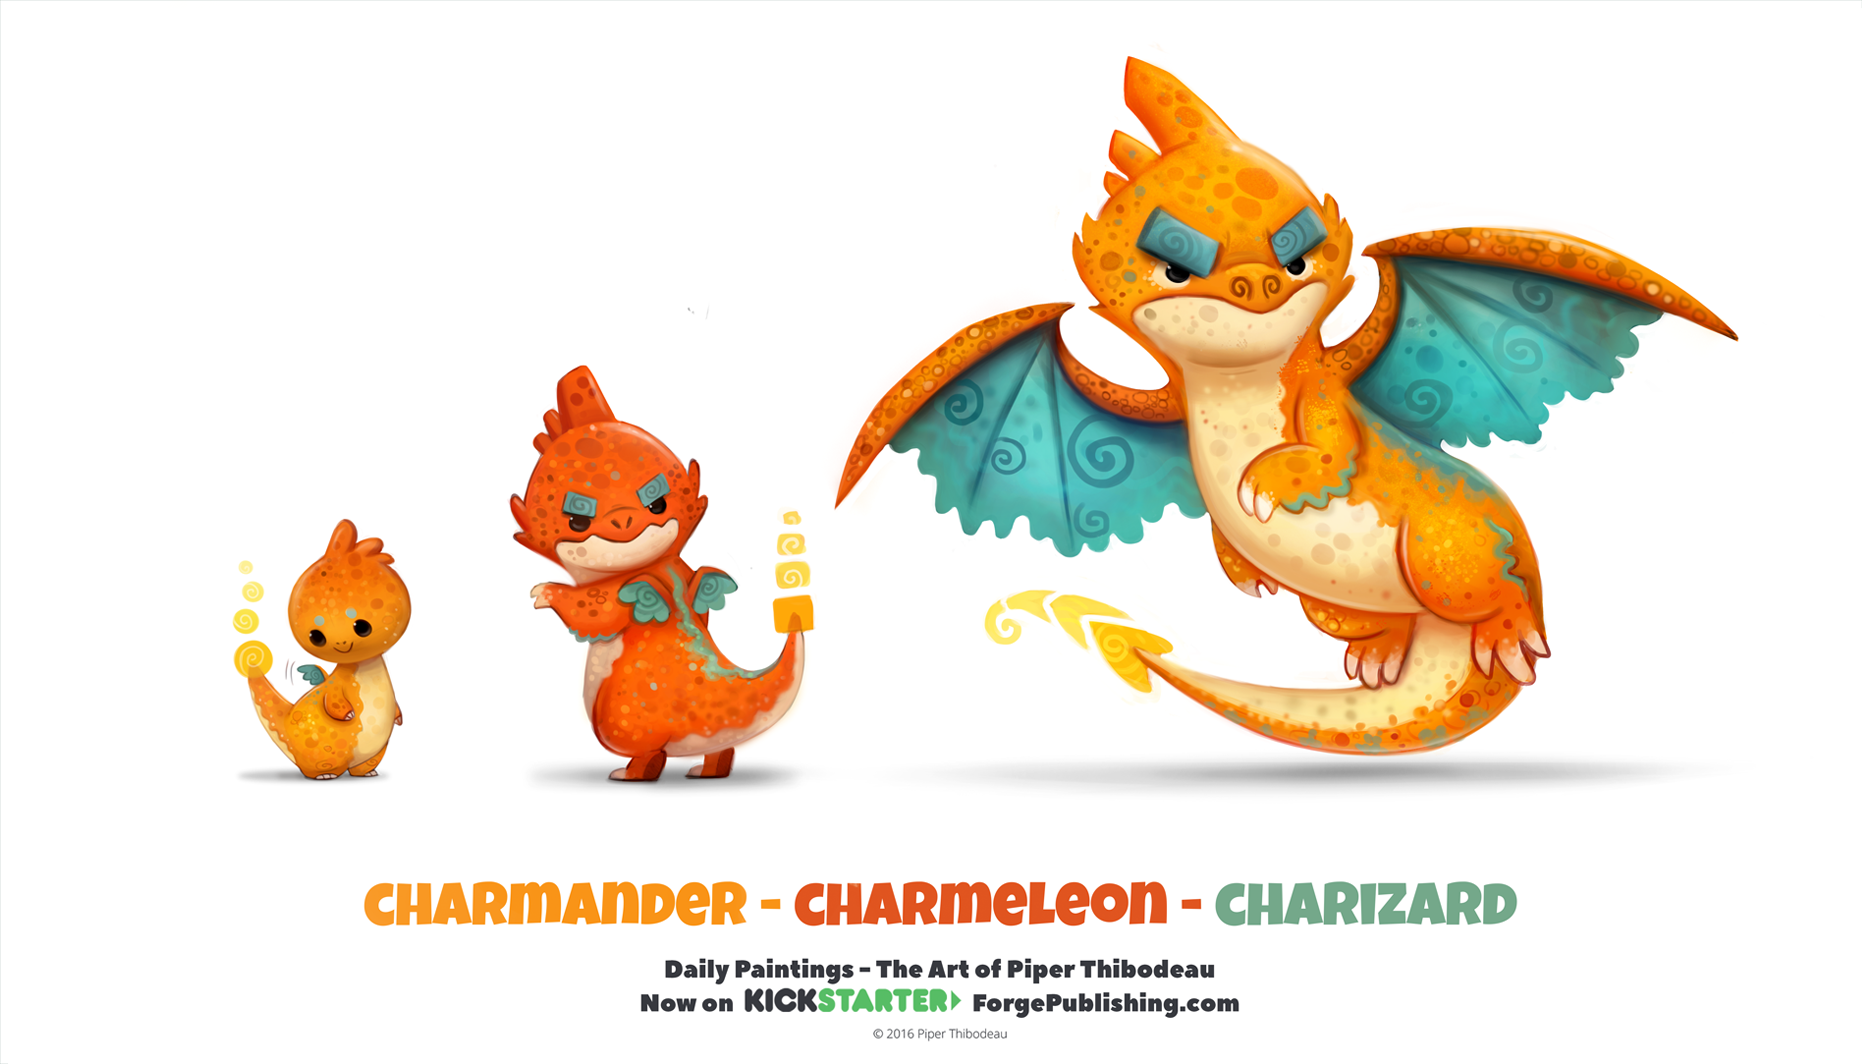 daily_1318__charmander__charmeleon__charizard_by_cryptid_creations-da8efj1